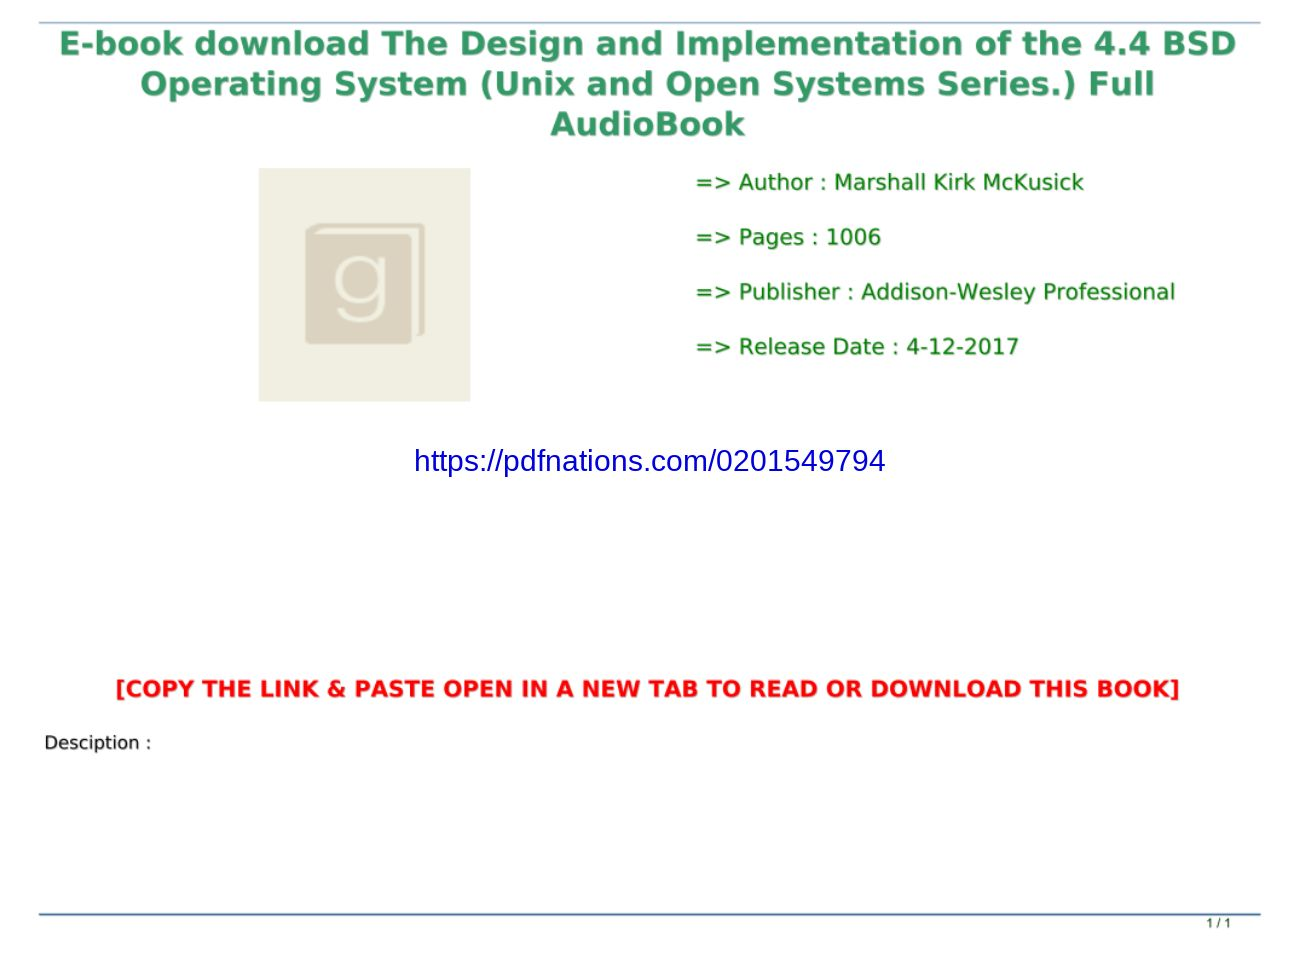 E Book Download The Design And Implementation Of The 4 4 Bsd Operating System Unix And Open Systems Text Images Music Video Glogster Edu Interactive Multimedia Posters